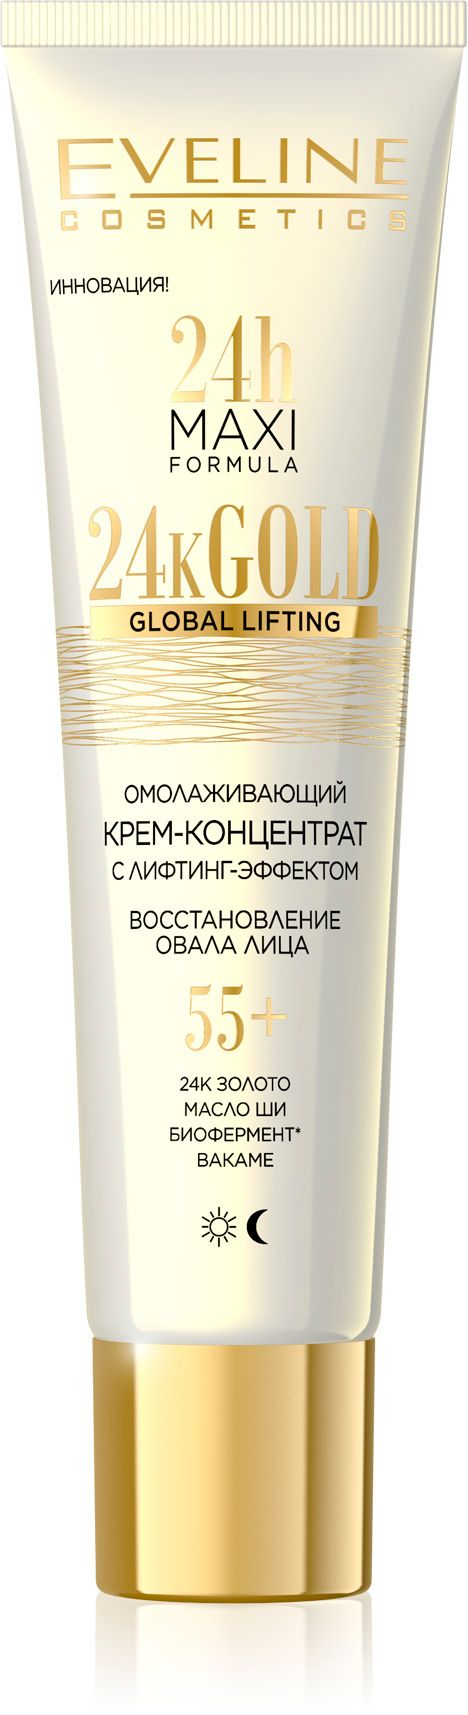 Anti-aging cream-concentrate with lifting effect 55+ 24h series maxi formula, Avon, 40 ml